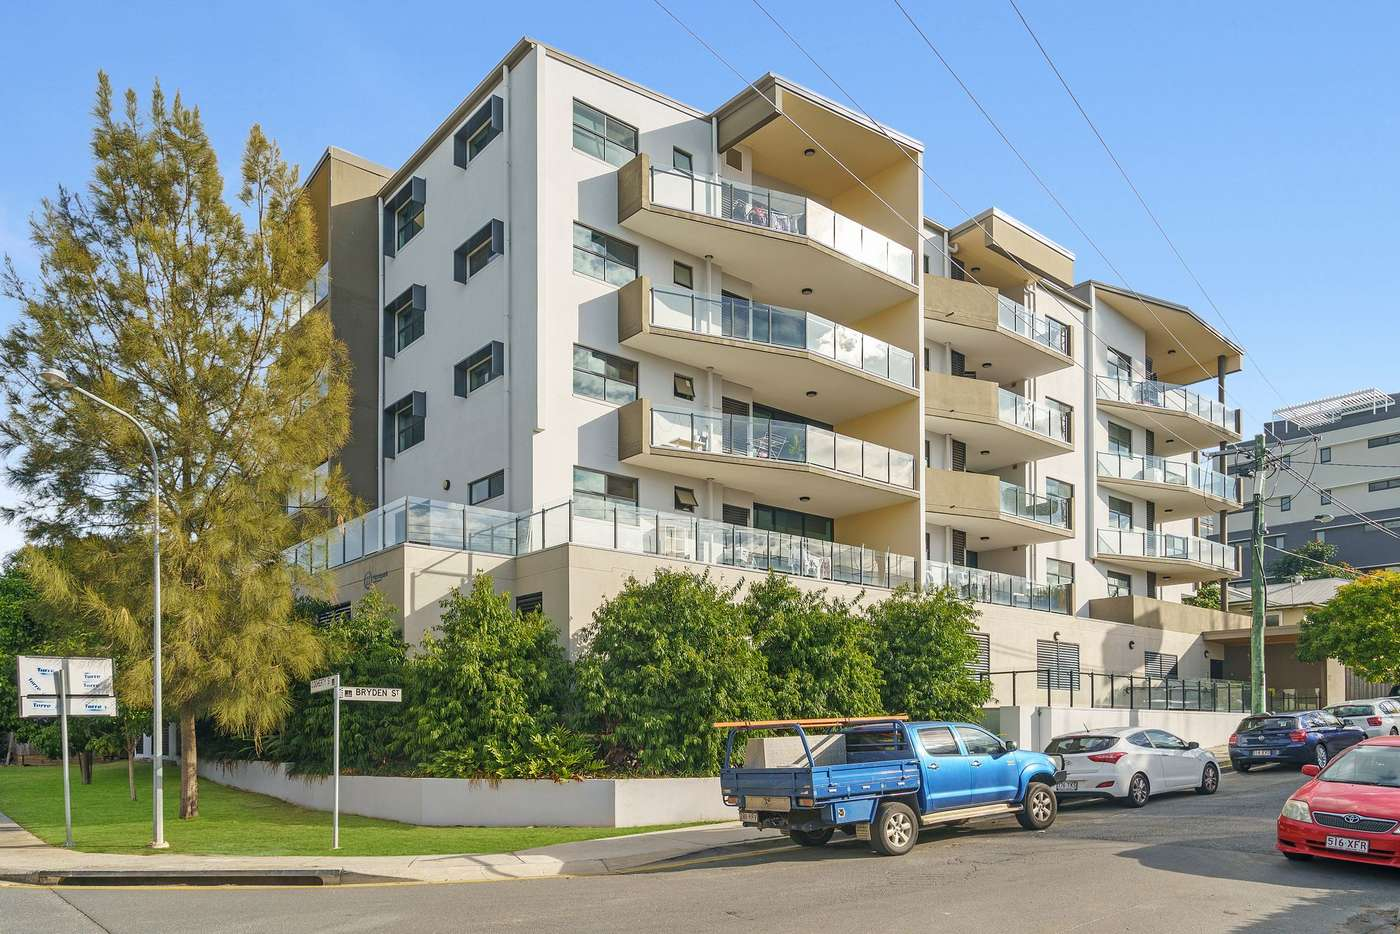 Main view of Homely apartment listing, 41/37 Bryden Street, Windsor QLD 4030